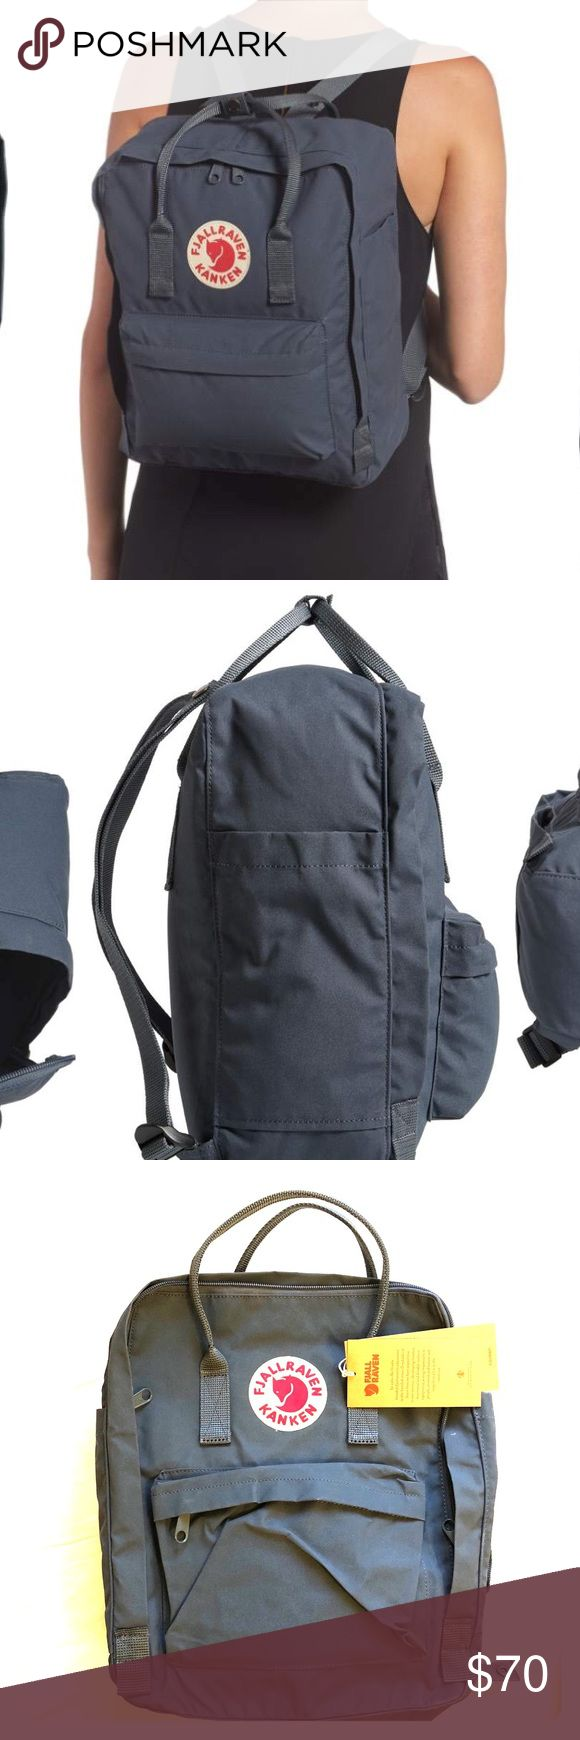 "Fjallraven Kanken Backpack NWT • graphite color SIZE INFO 10 ¼""W x 15""H x 5""D. (Interior capacity: medium.) .8 lbs. DETAILS & CARE Scandinavian design  Two-way zip-around closure with rain flap. Fits most 13"" laptops. Snap-together top carry handles; adjustable backpack straps. Exterior zip and slip pockets. Foam insert for cushioning and shape is removable and can be used as an on-the-go seat pad. Vinylon. By Fjällräven; imported. Handbags. Item #822824 Fjallraven Bags Backpacks"